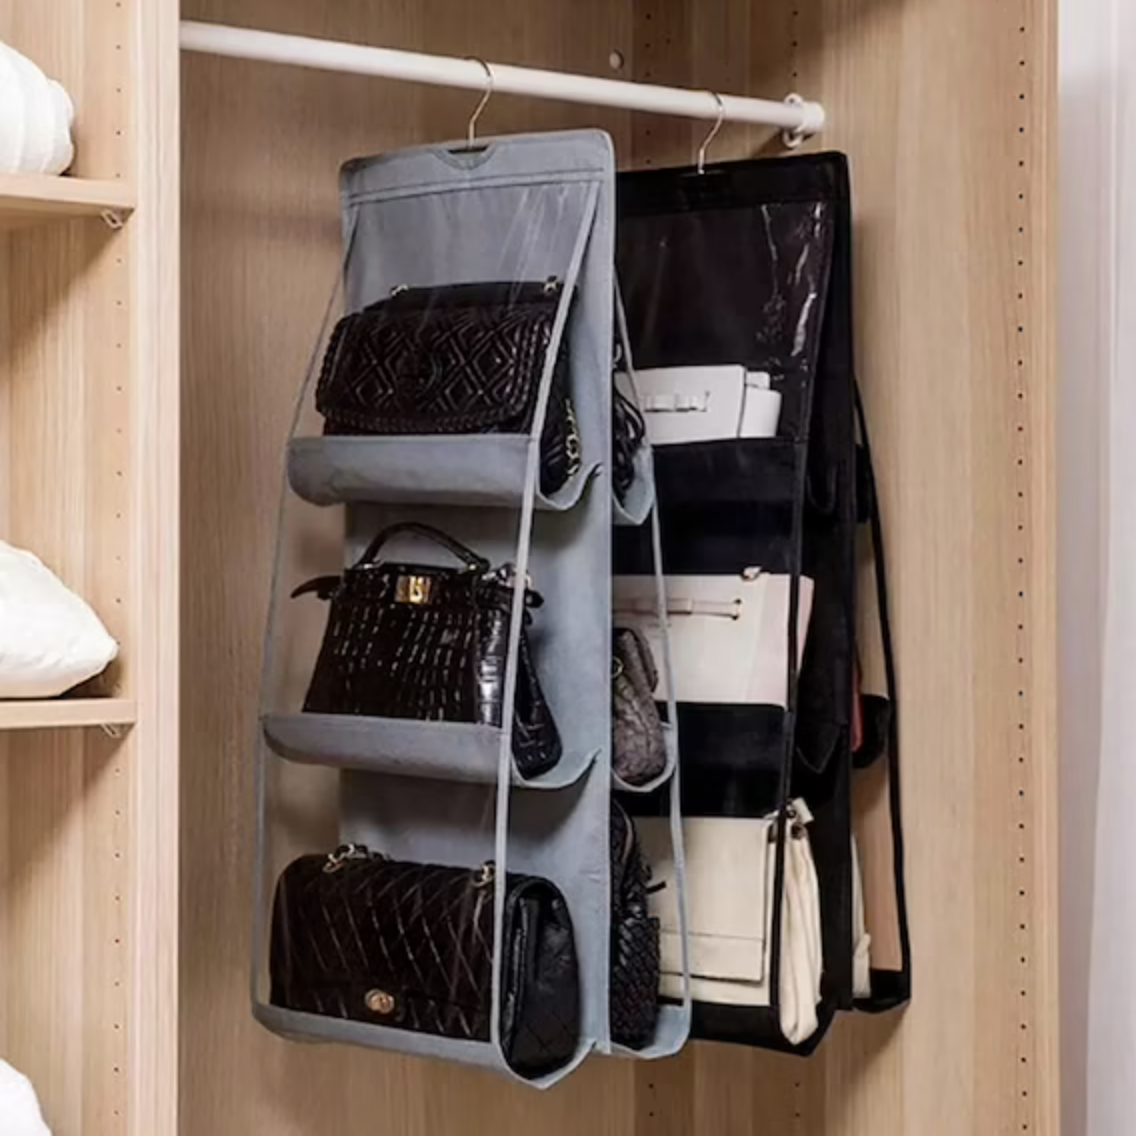 Two purse hangers are shown in a closet